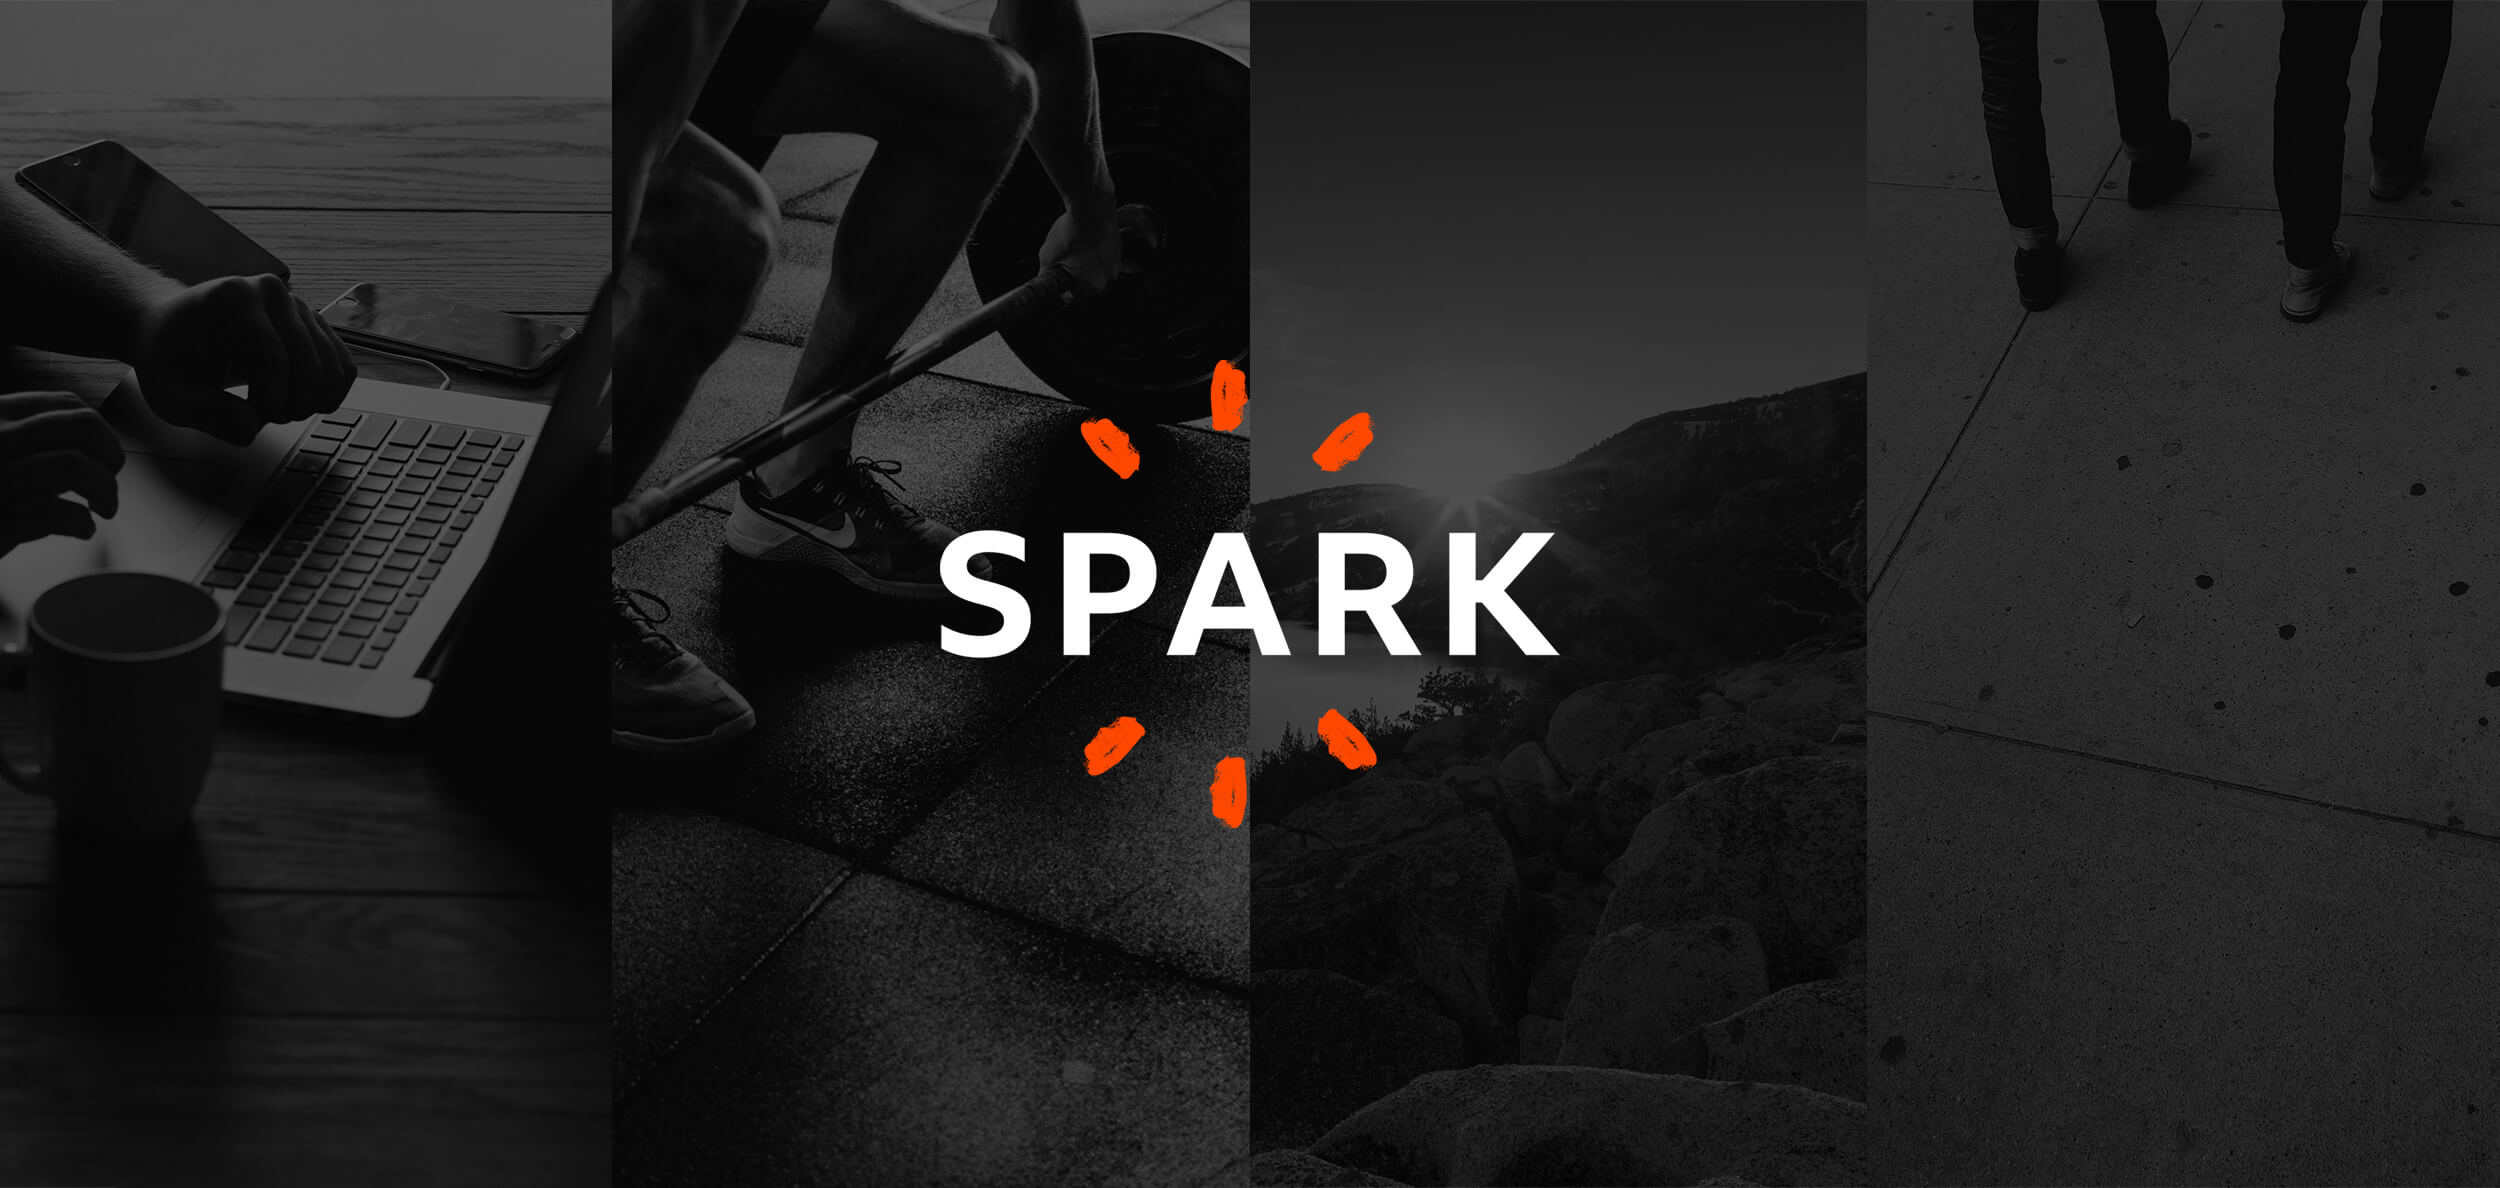 Spark_CoverPhoto